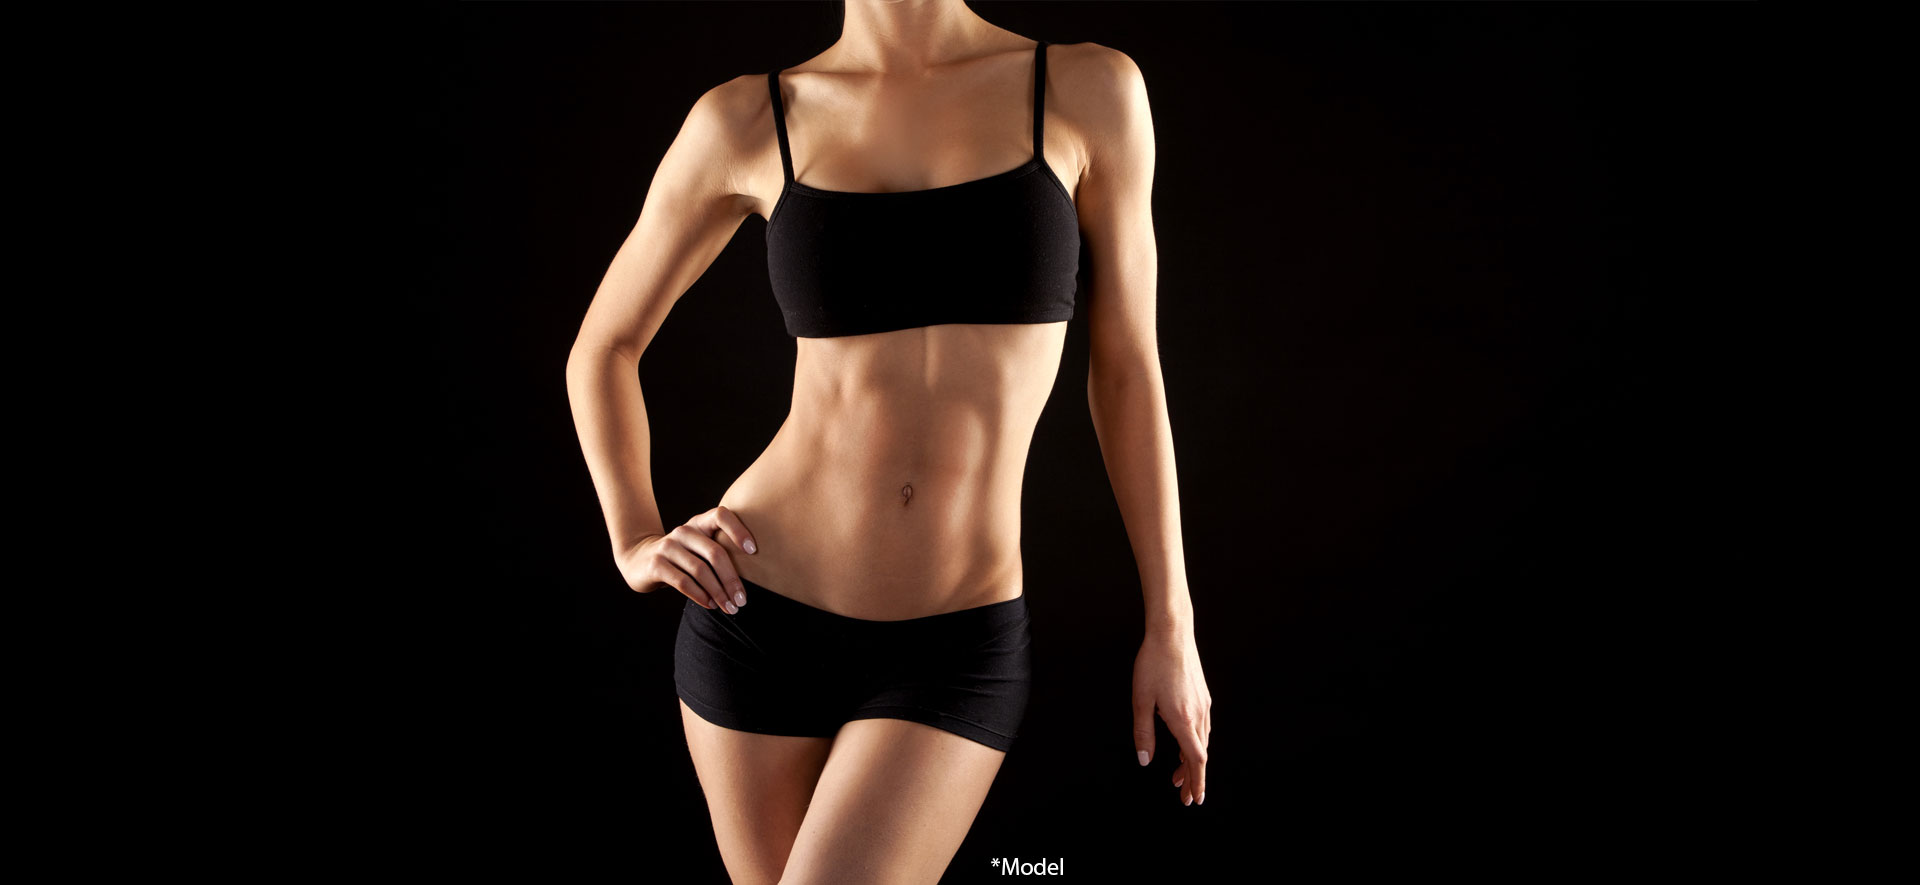 Female fitness model posing on black background